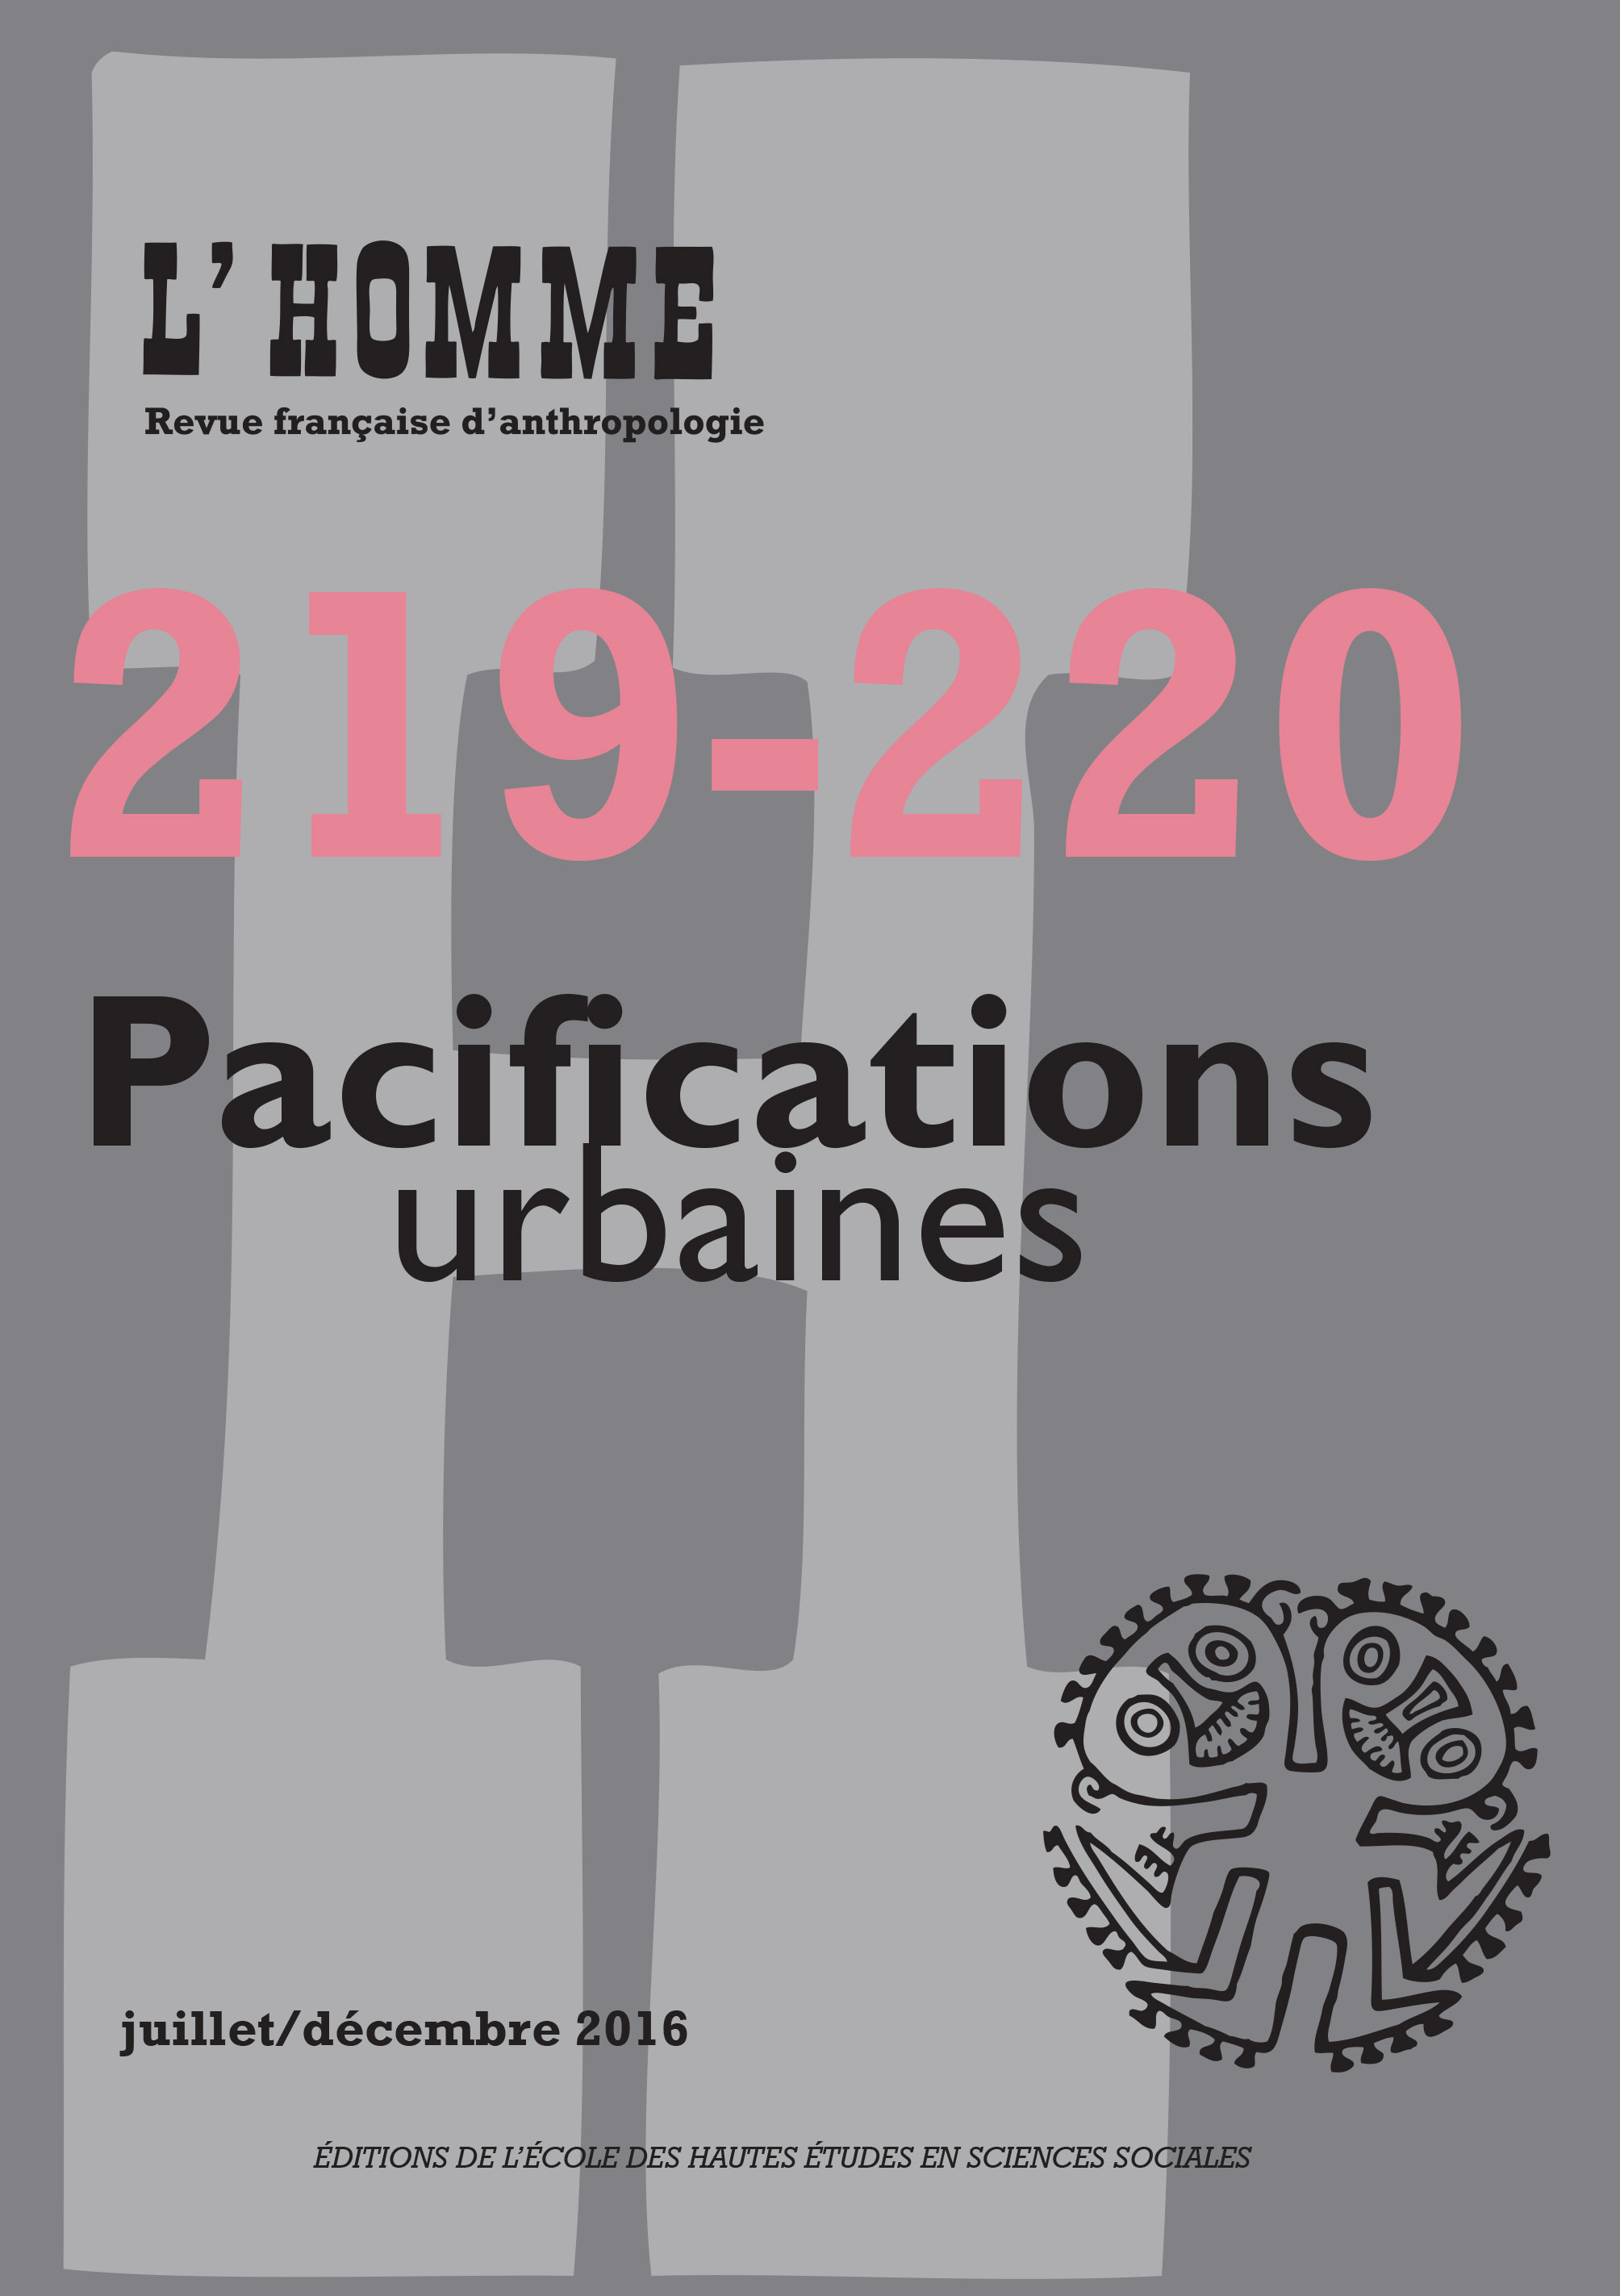 N°219-220 : Pacifications urbaines